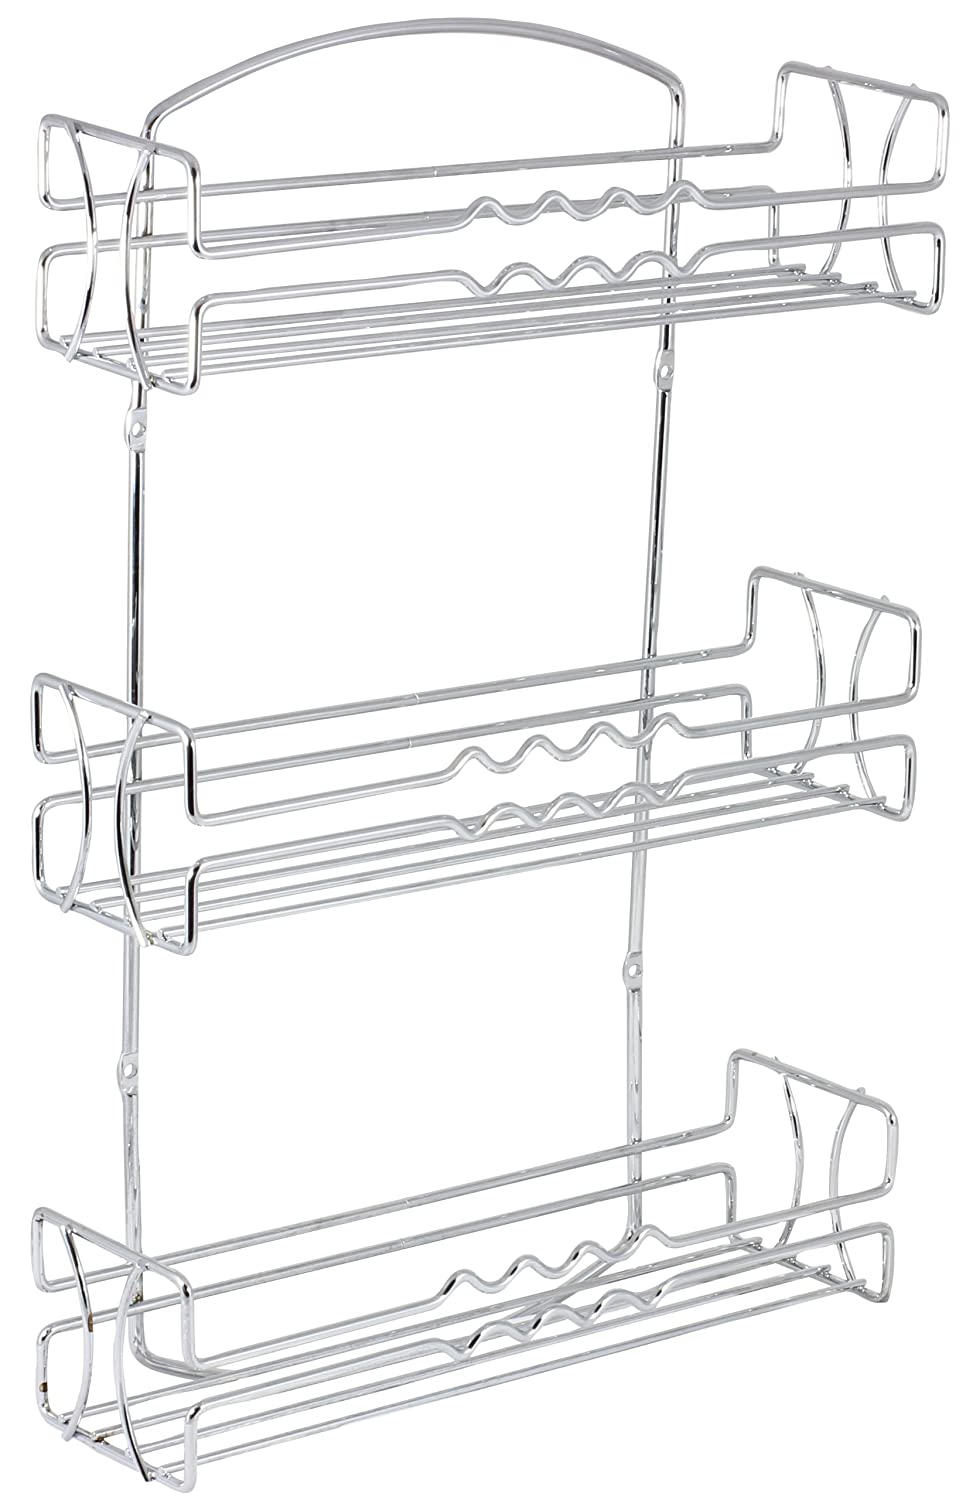 Spice Rack Kitchen Organizer Wall Mount Chrome Decorative